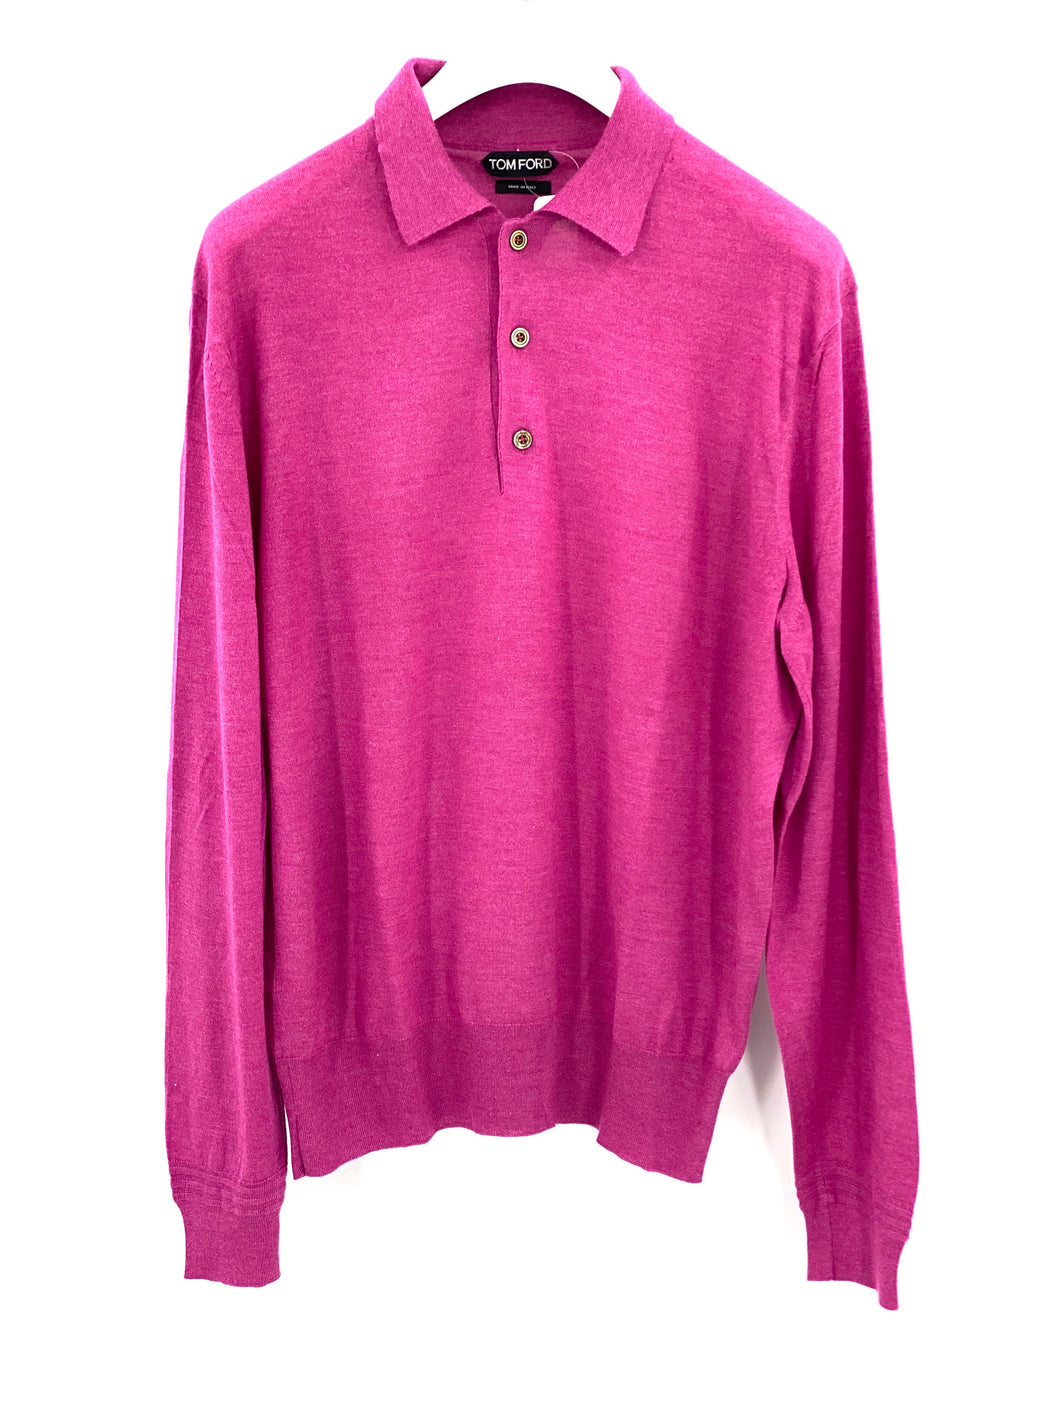 Tom Ford Polo Shirt